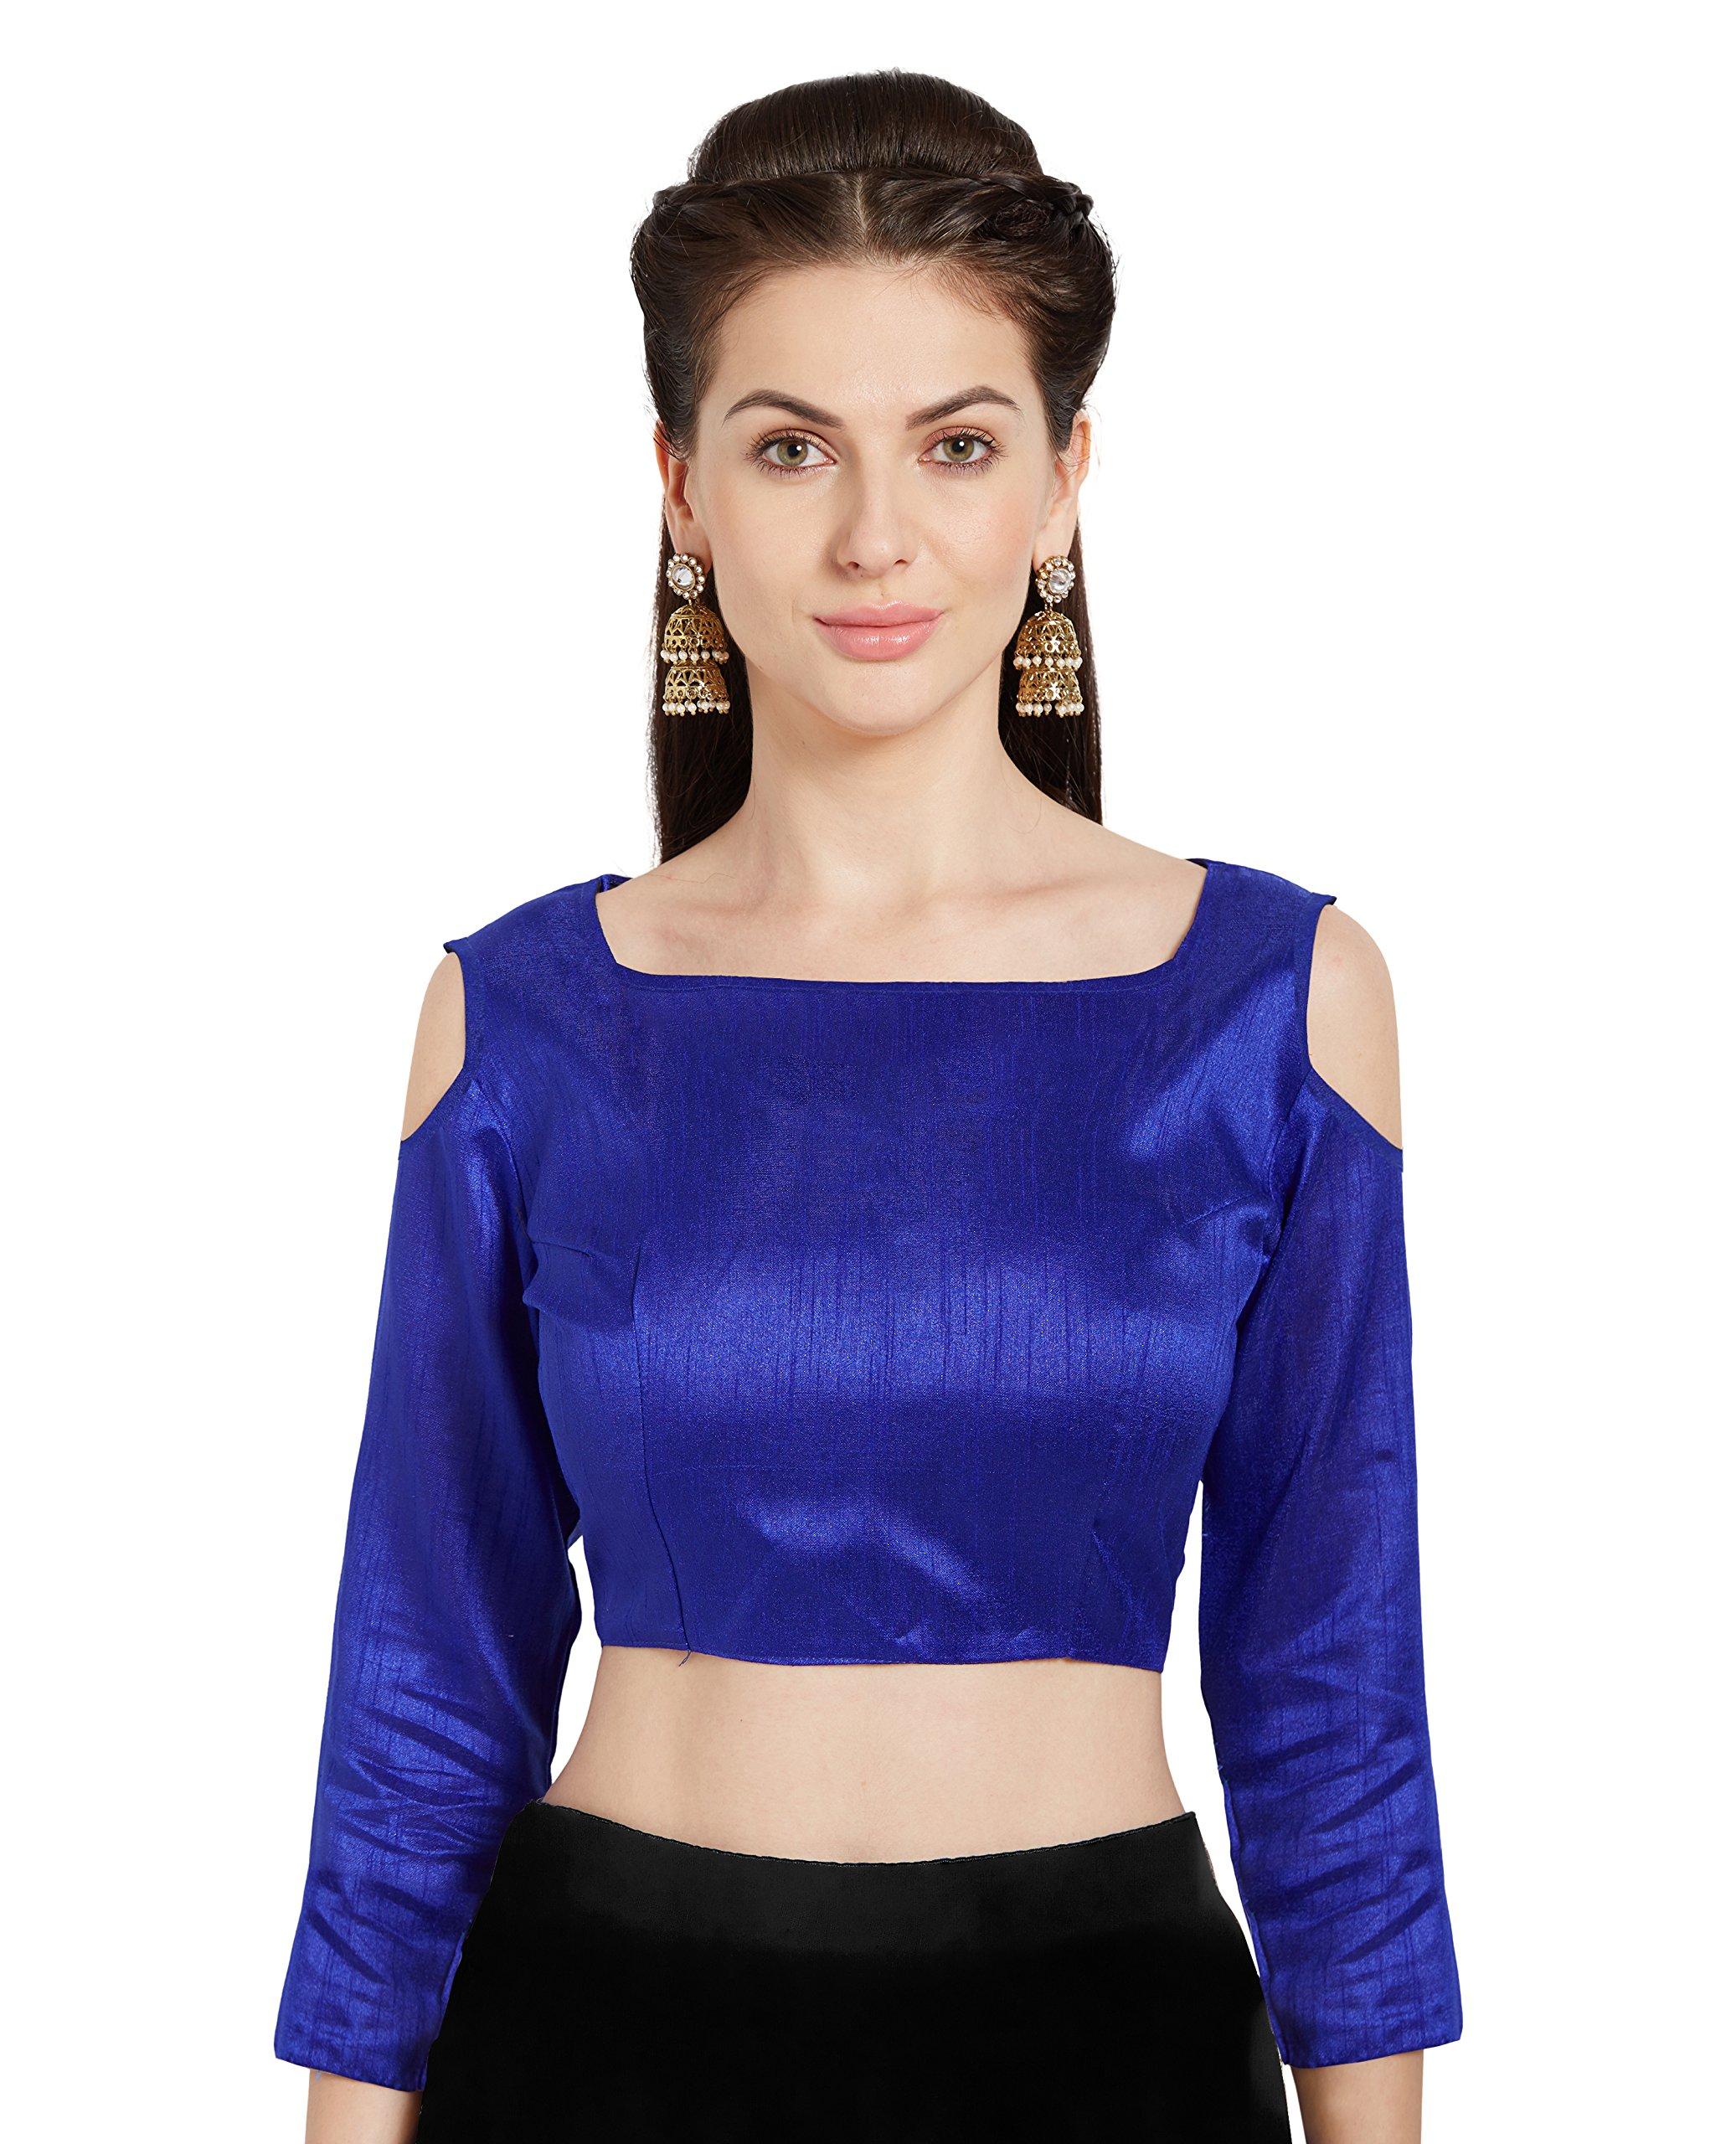 Women's Blue Art Silk and Readymade Saree Blouse Choli Cold Shoulder Top